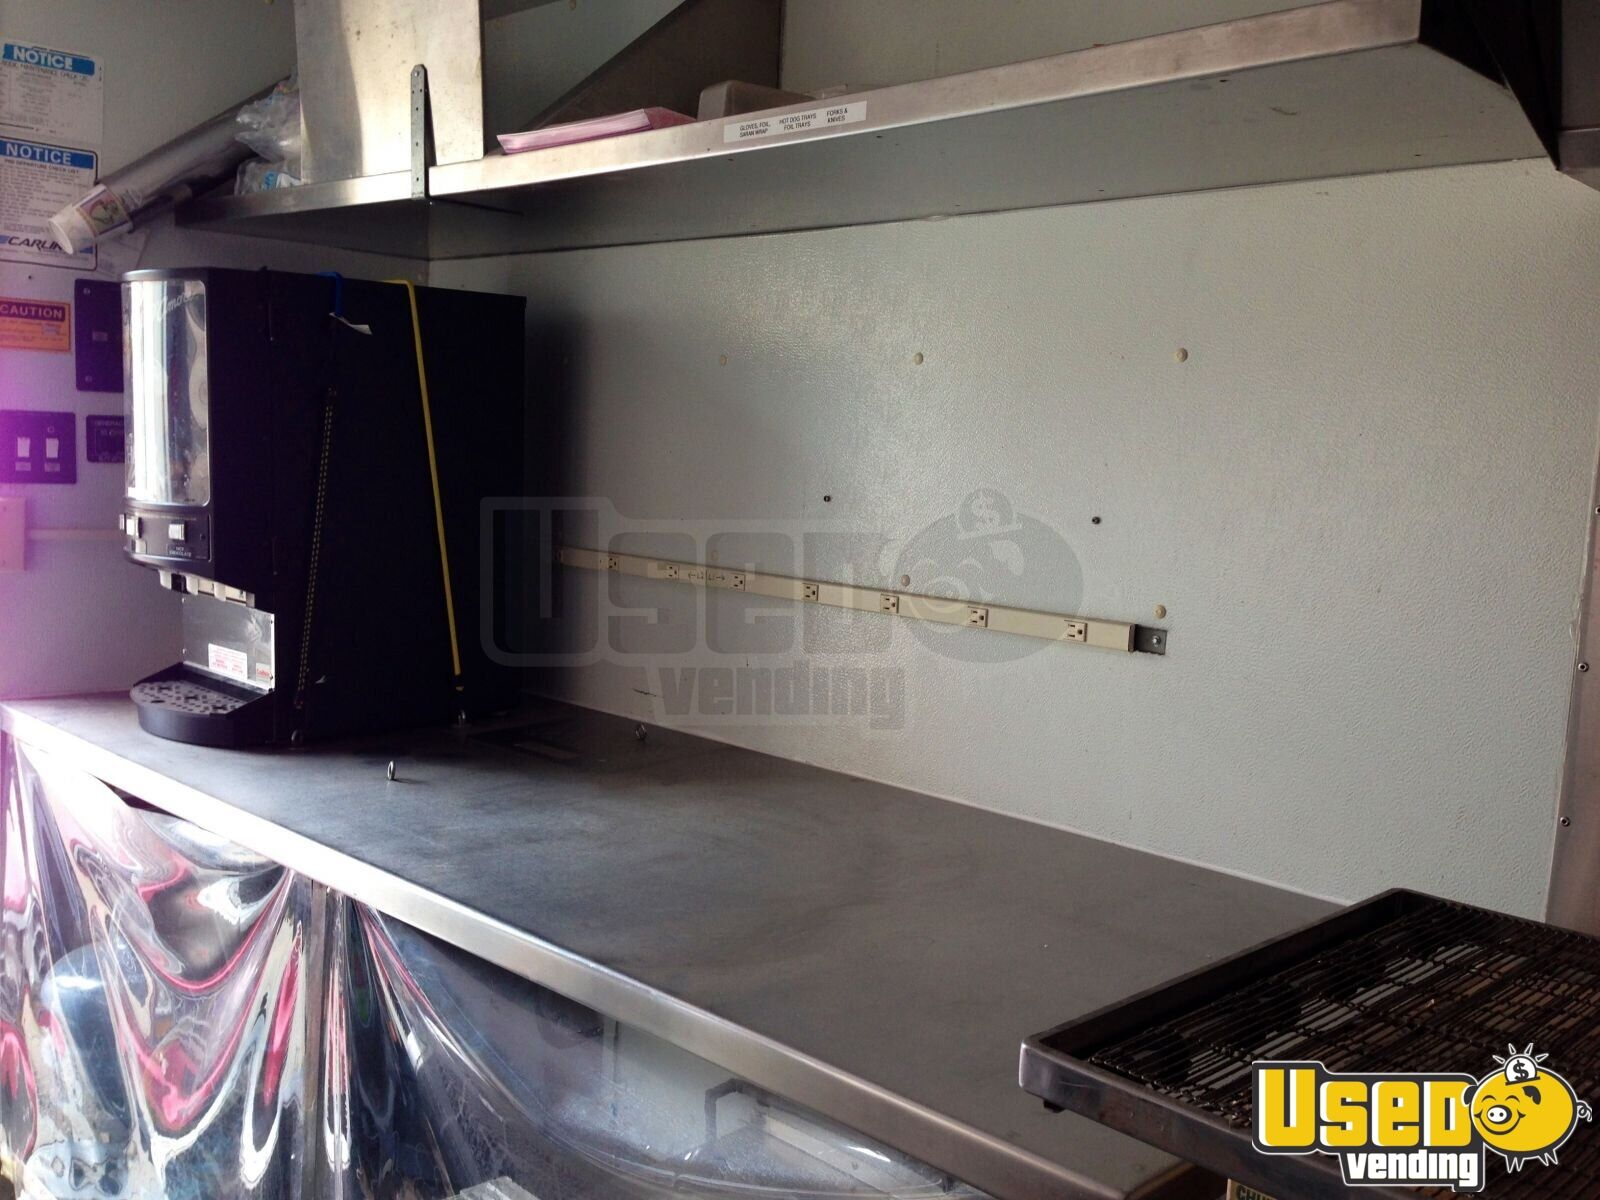 1996 Grumman Catering Food Truck Diamond Plated Aluminum Flooring California Gas Engine for Sale - 6